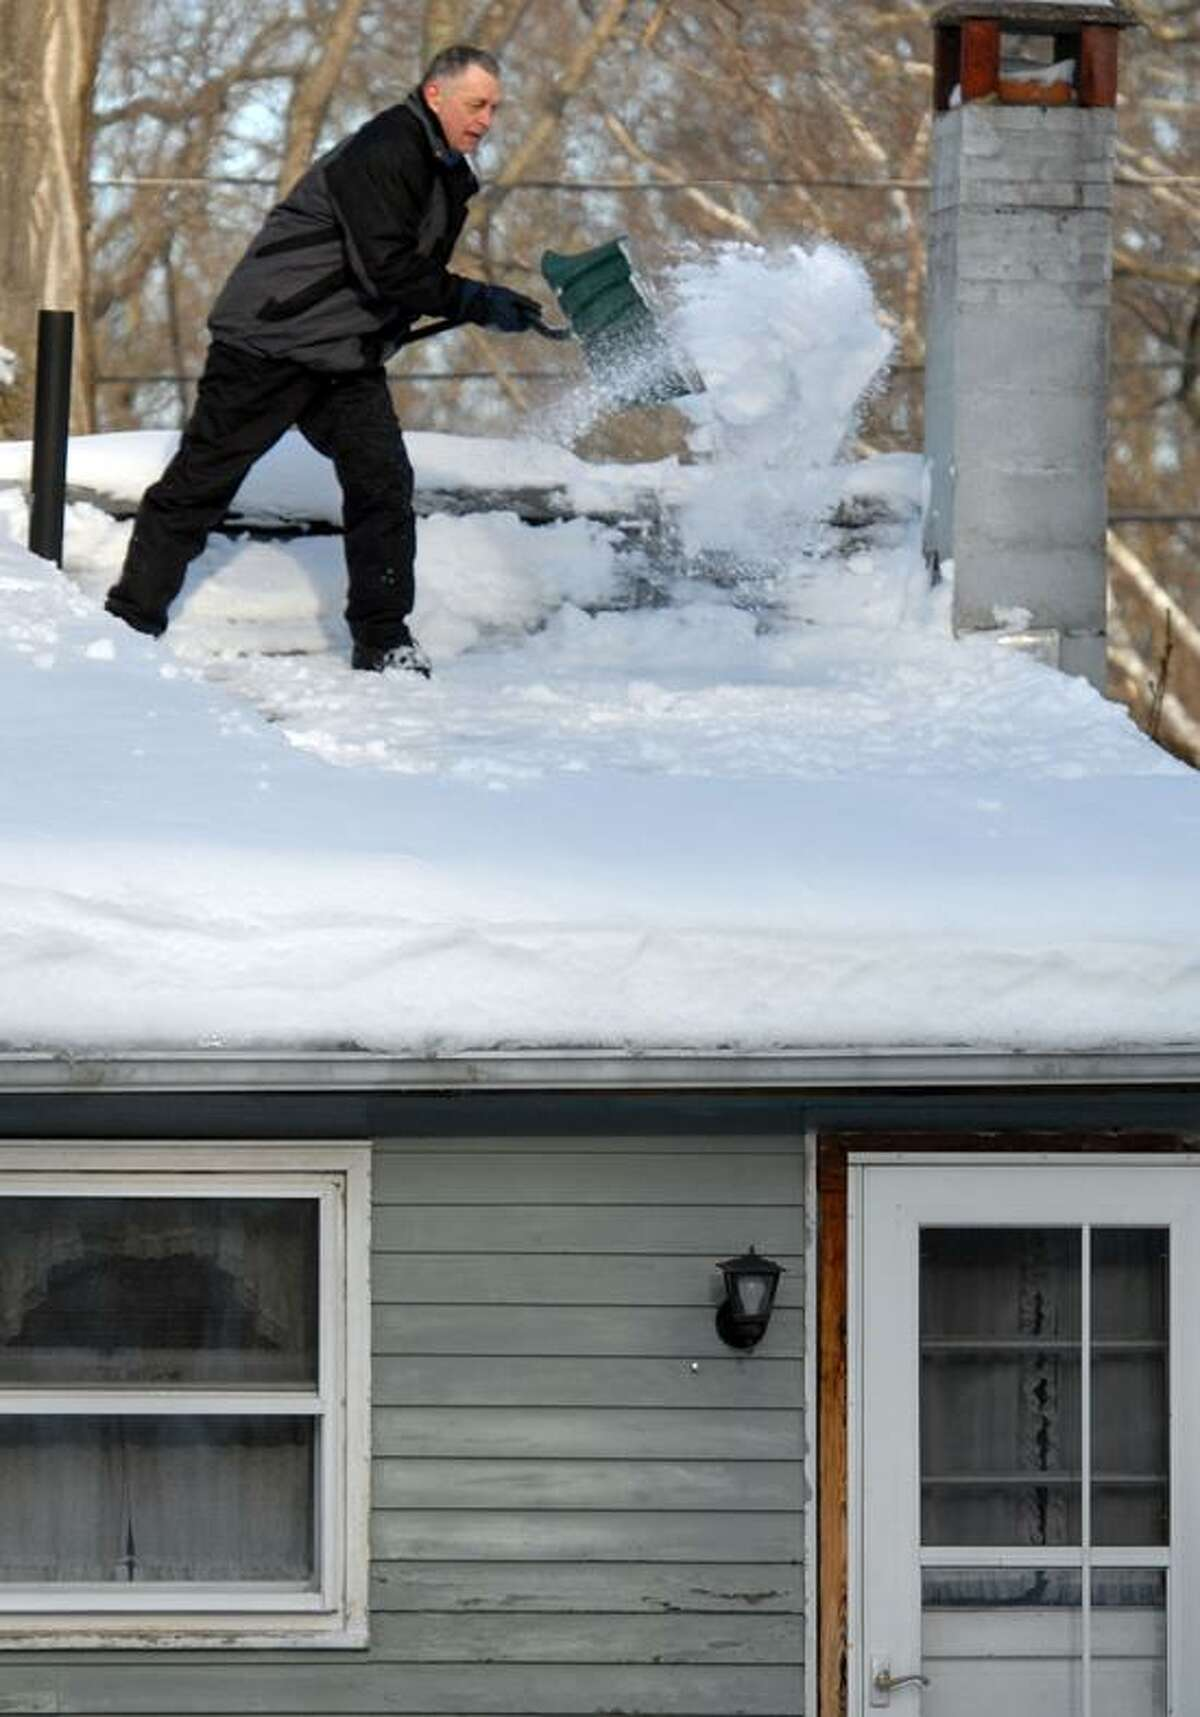 The Blizzard of 2013, Nemo. Bill Mauzey of Ivoryton (Essex) clears the snow off his roof. Mara Lavitt/New Haven Register2/10/13